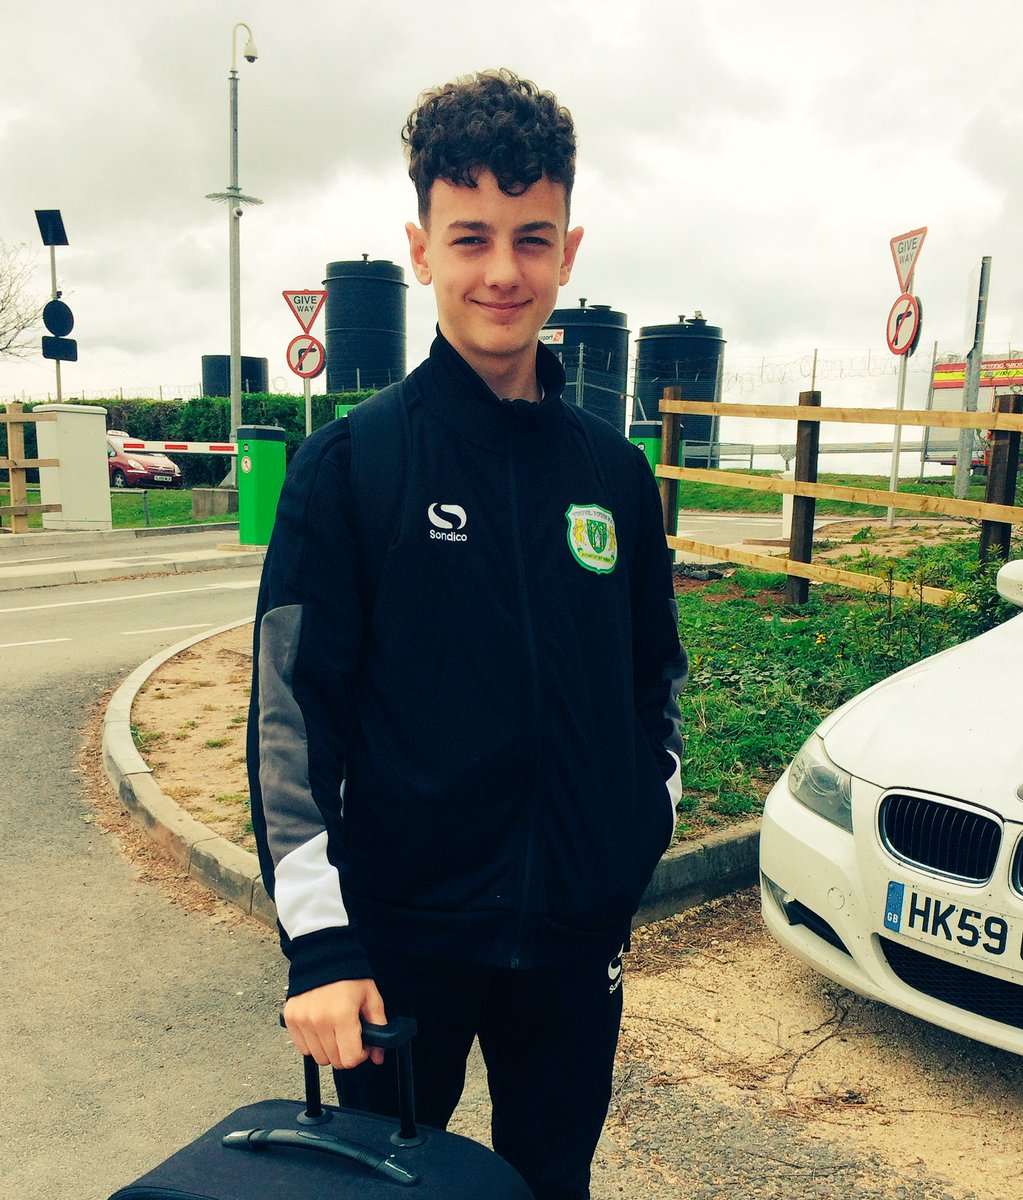 Hope Devon has an #awesome time in #Barcelona on tour with @YTFC this week <br>http://pic.twitter.com/y620NcpuGl